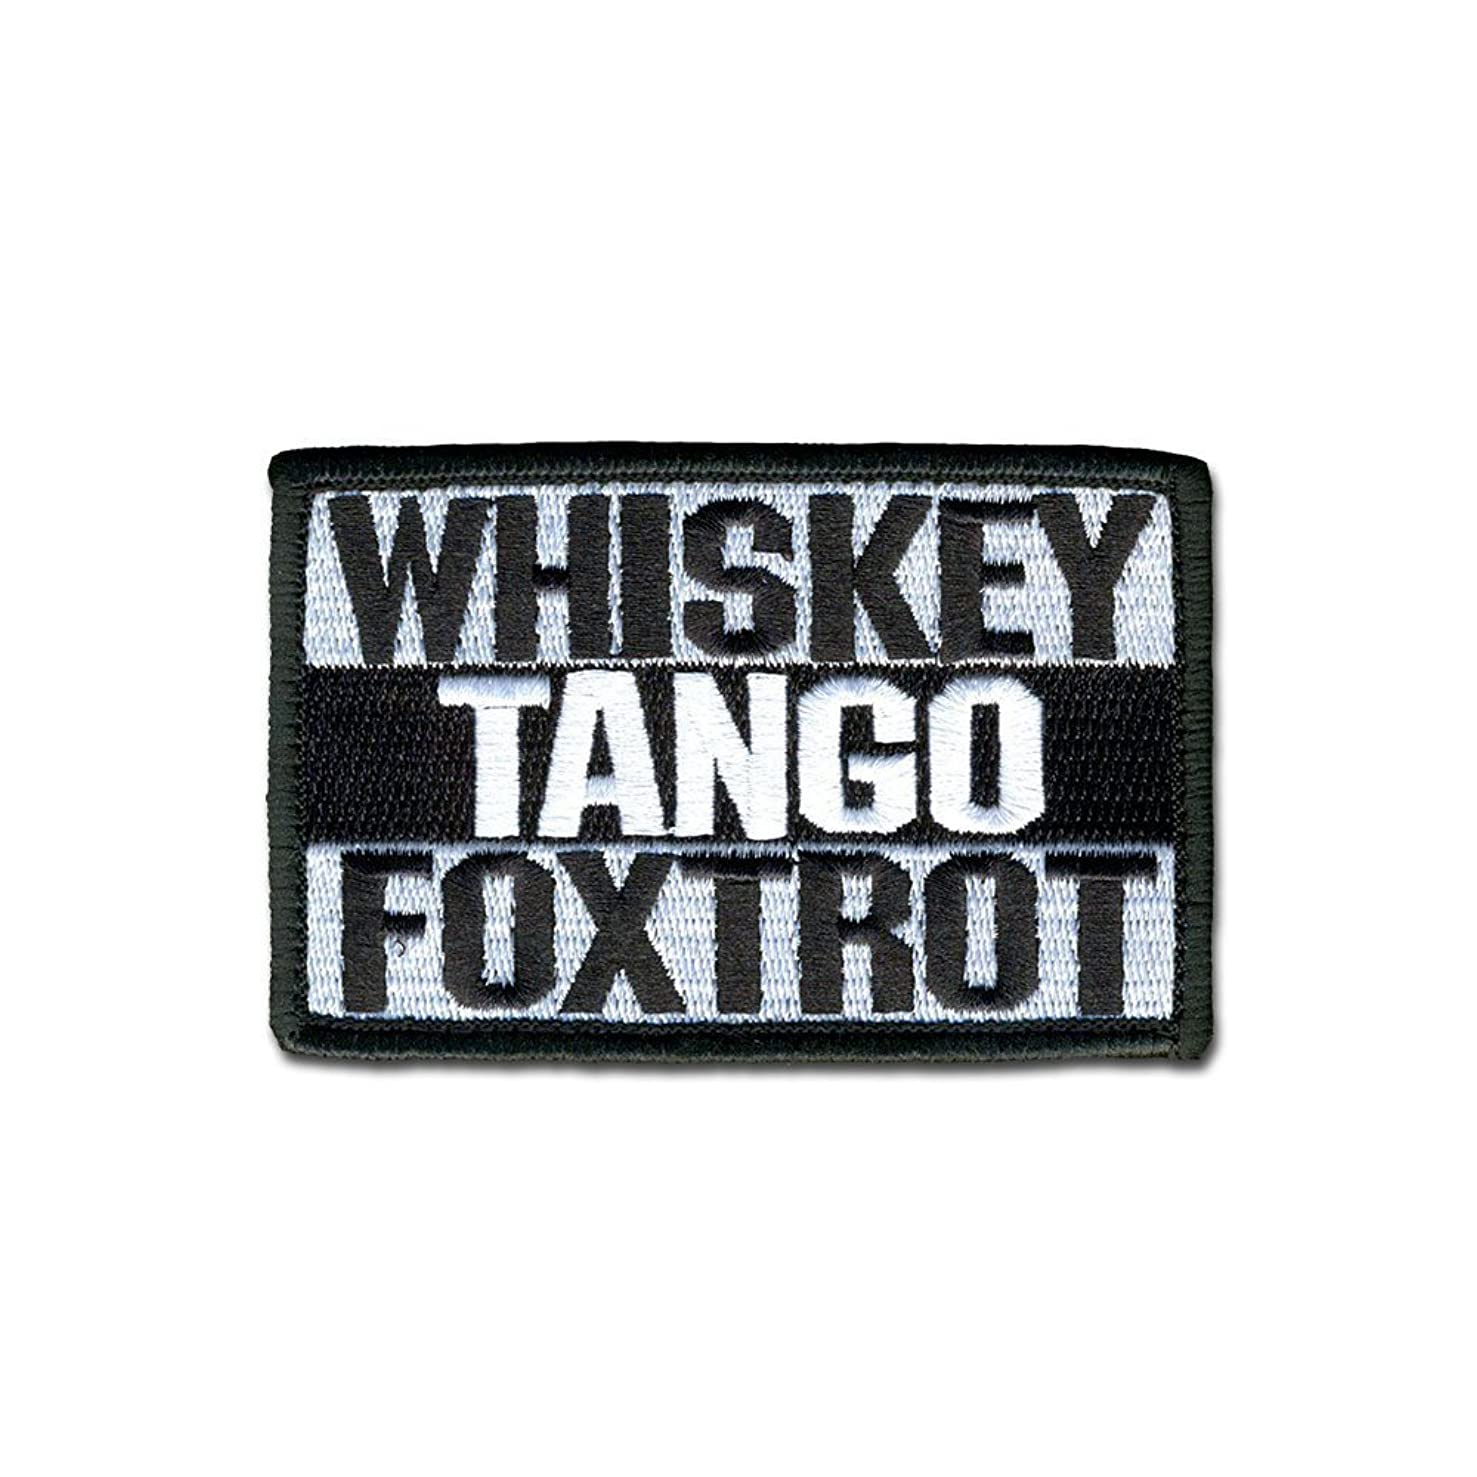 Whiskey Tango Foxtrot Patch Tactical Combat Bagde Military Hook Morale Patch Tactical Military Morale Patch Set Hook/Loop Backing